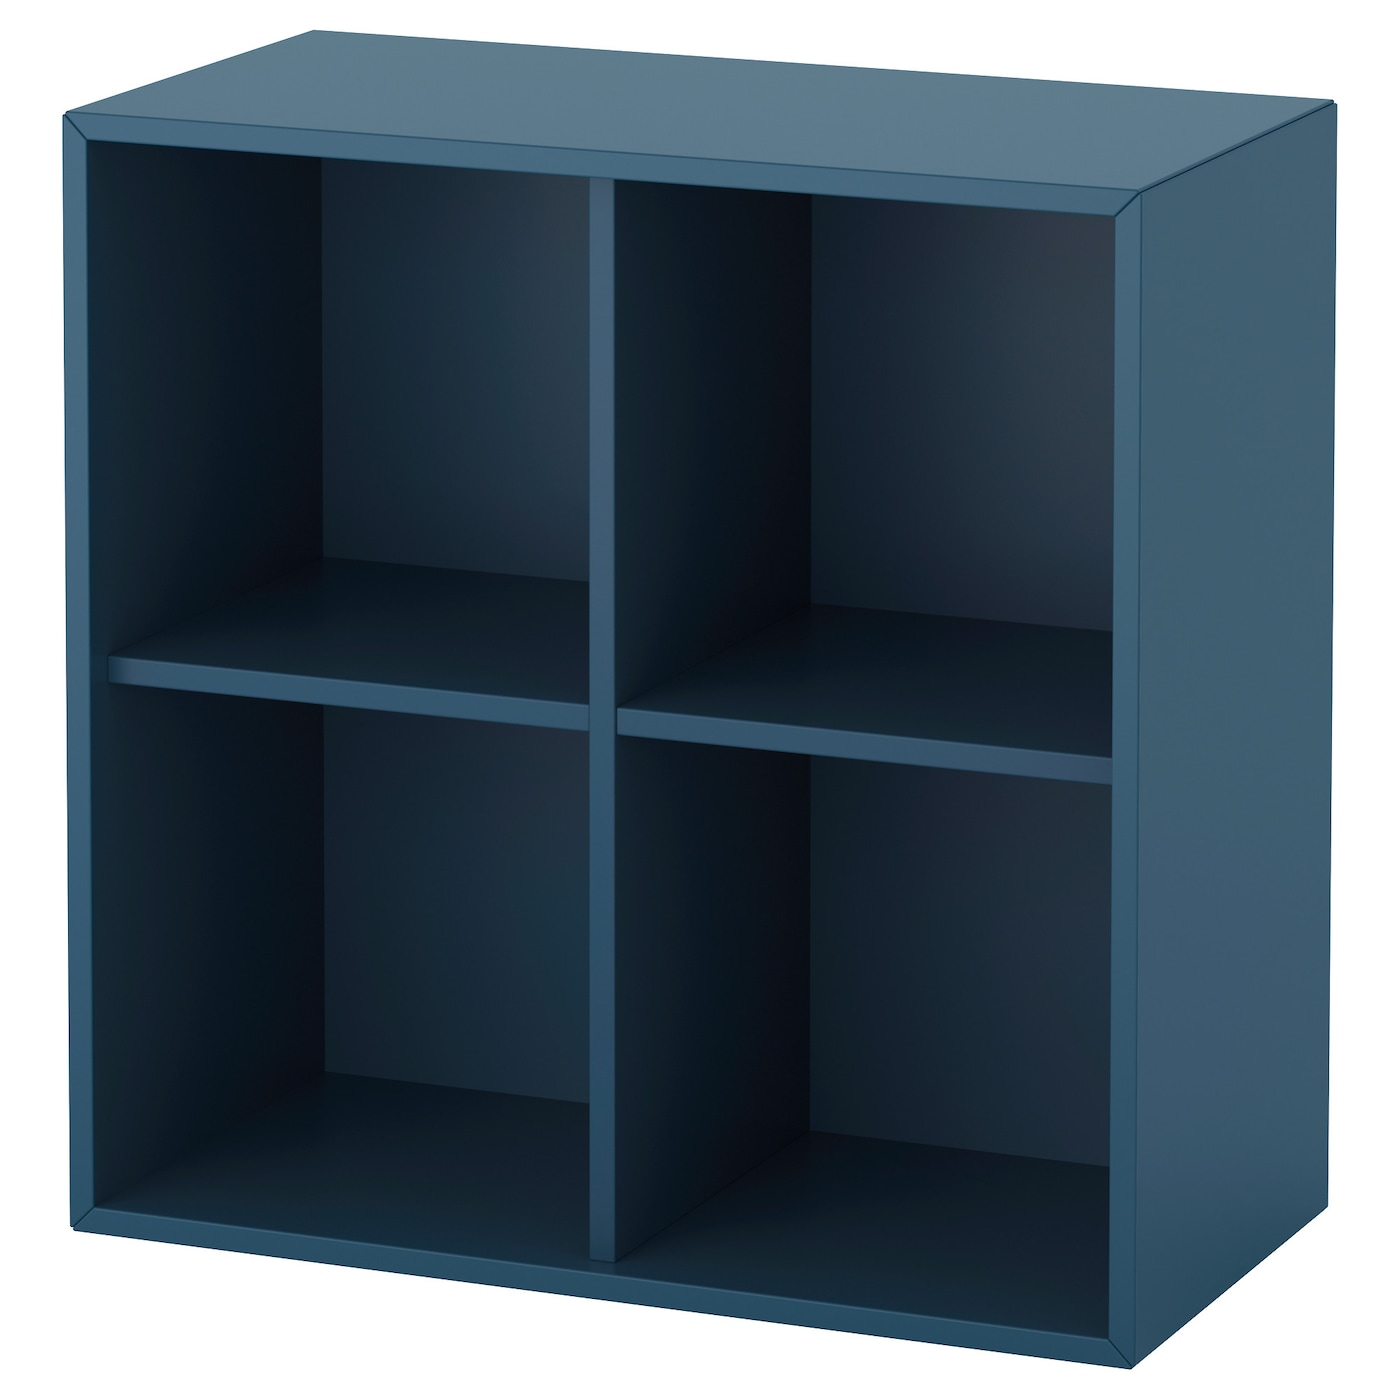 Eket cabinet with 4 compartments dark blue 70x35x70 cm ikea for Meuble 5 cases ikea